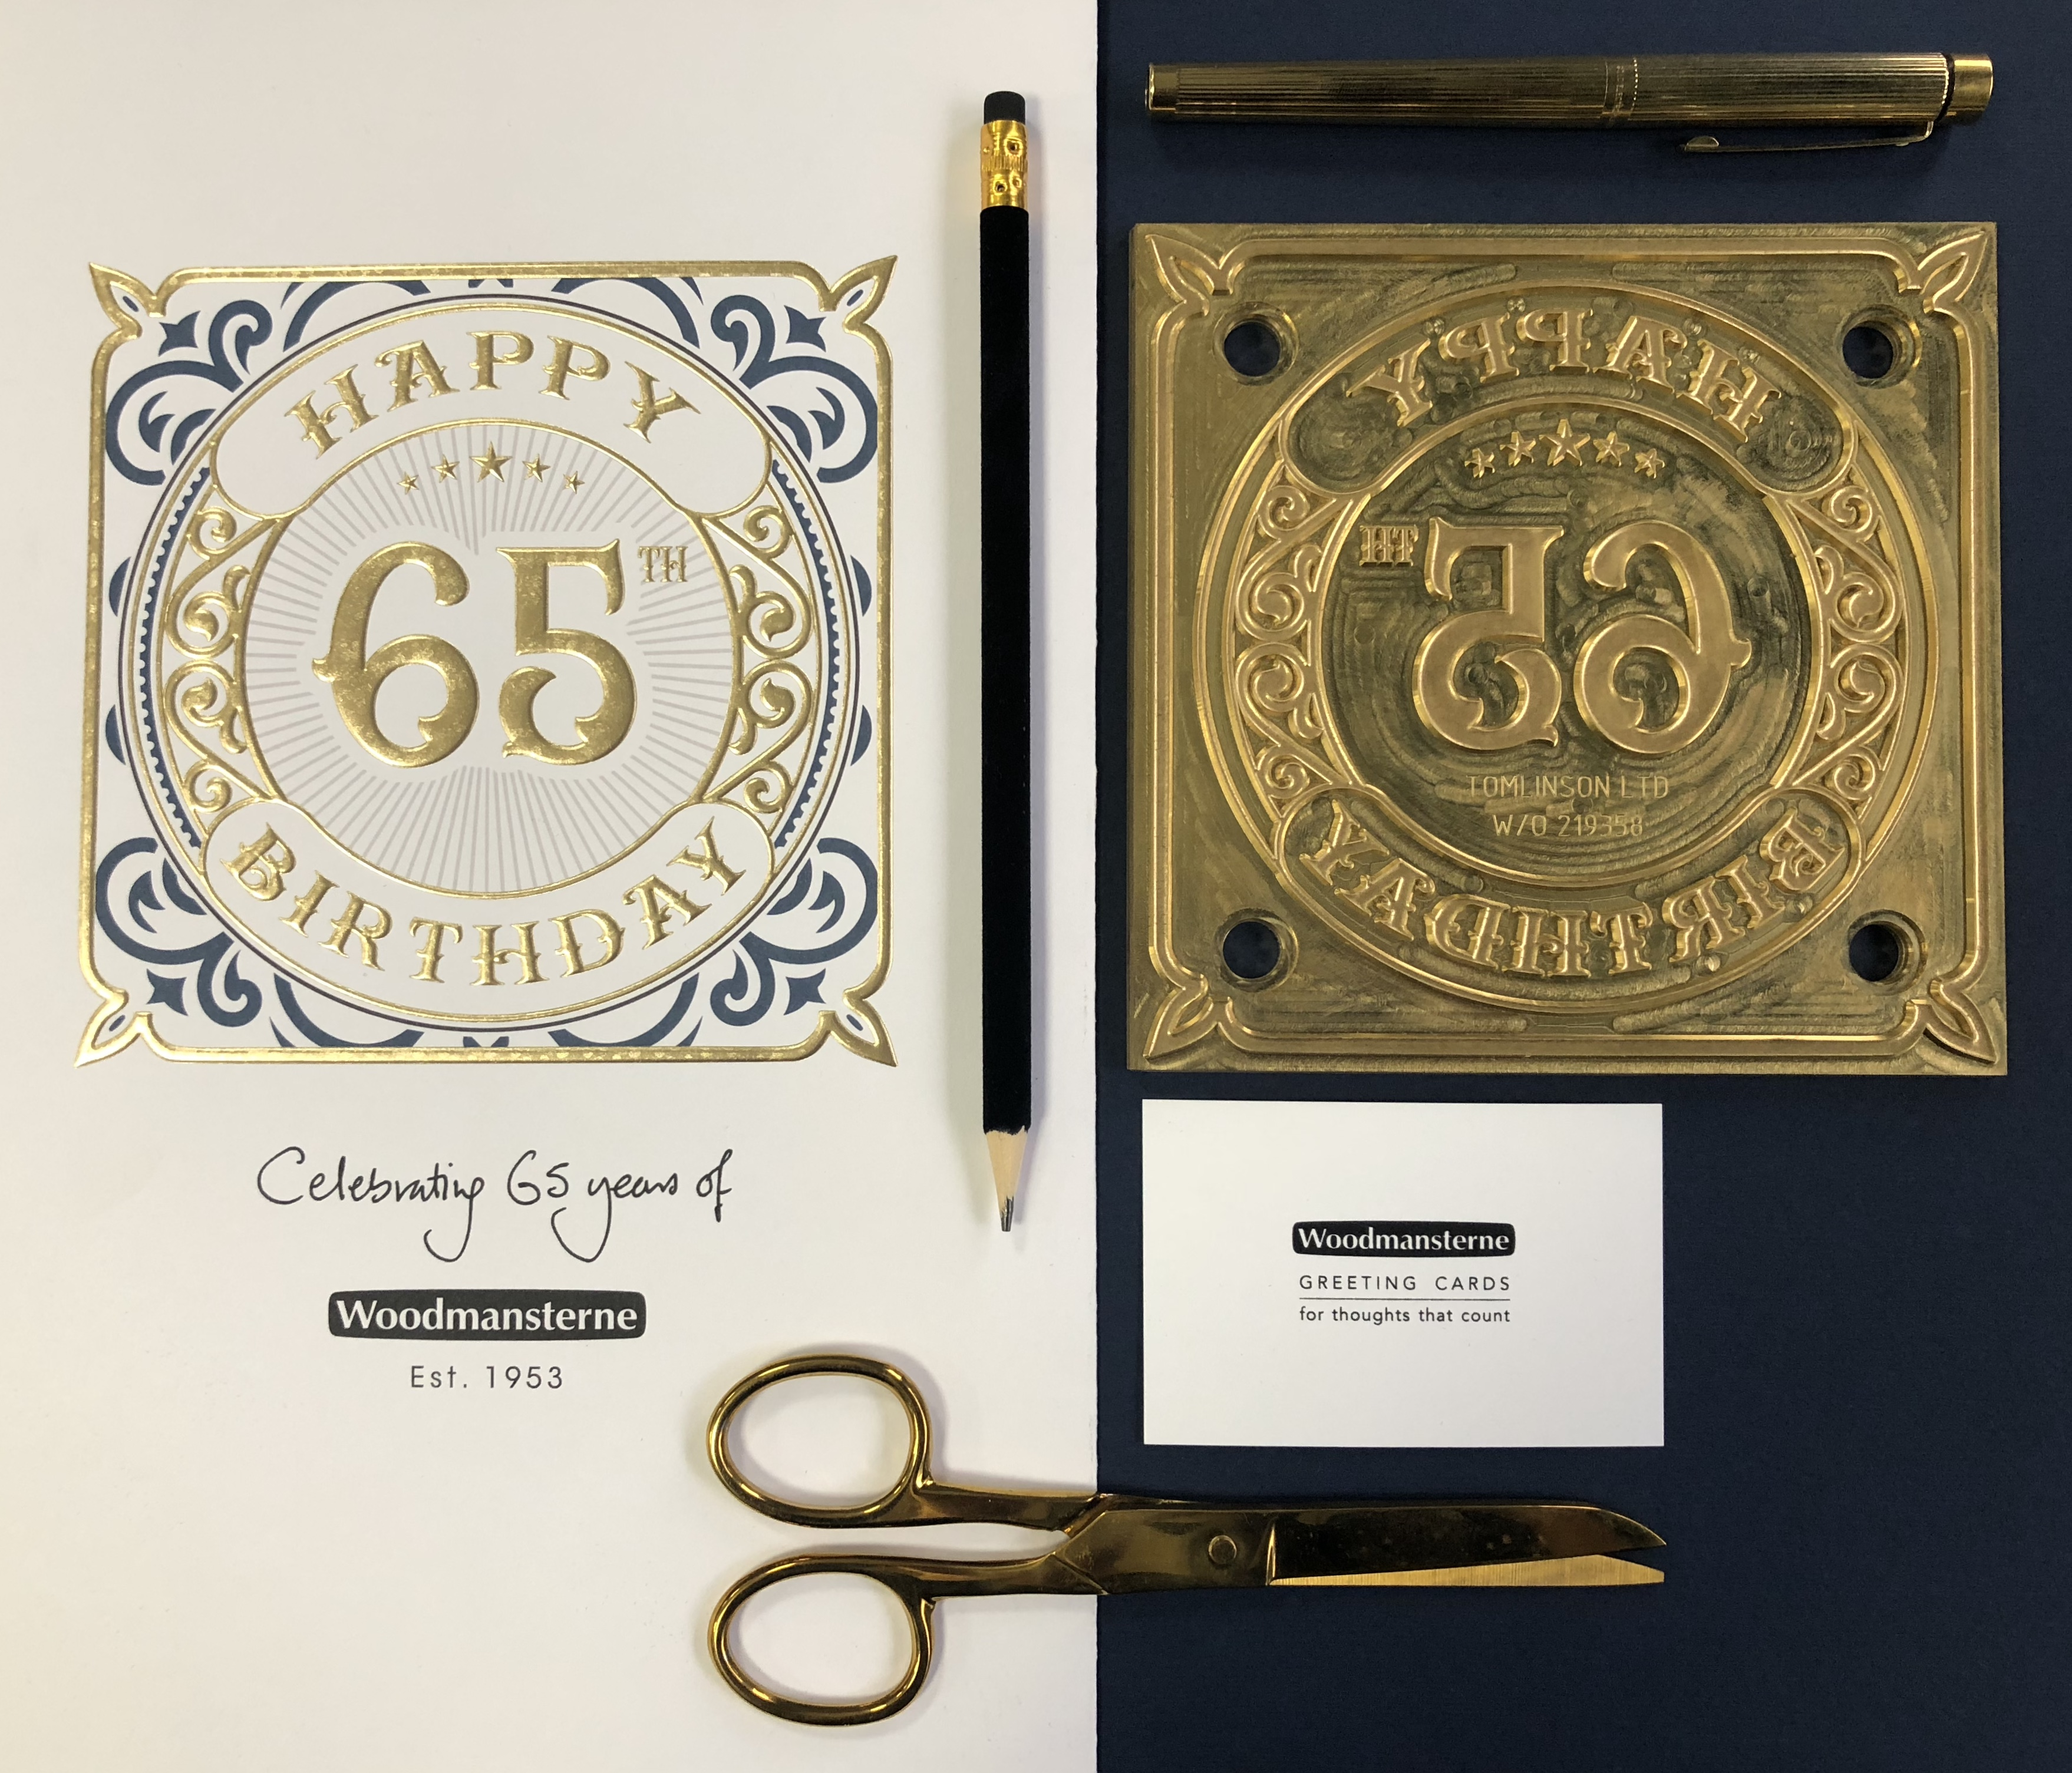 Above: This year Woodmansterne is celebrating the 65th anniversary of the company.